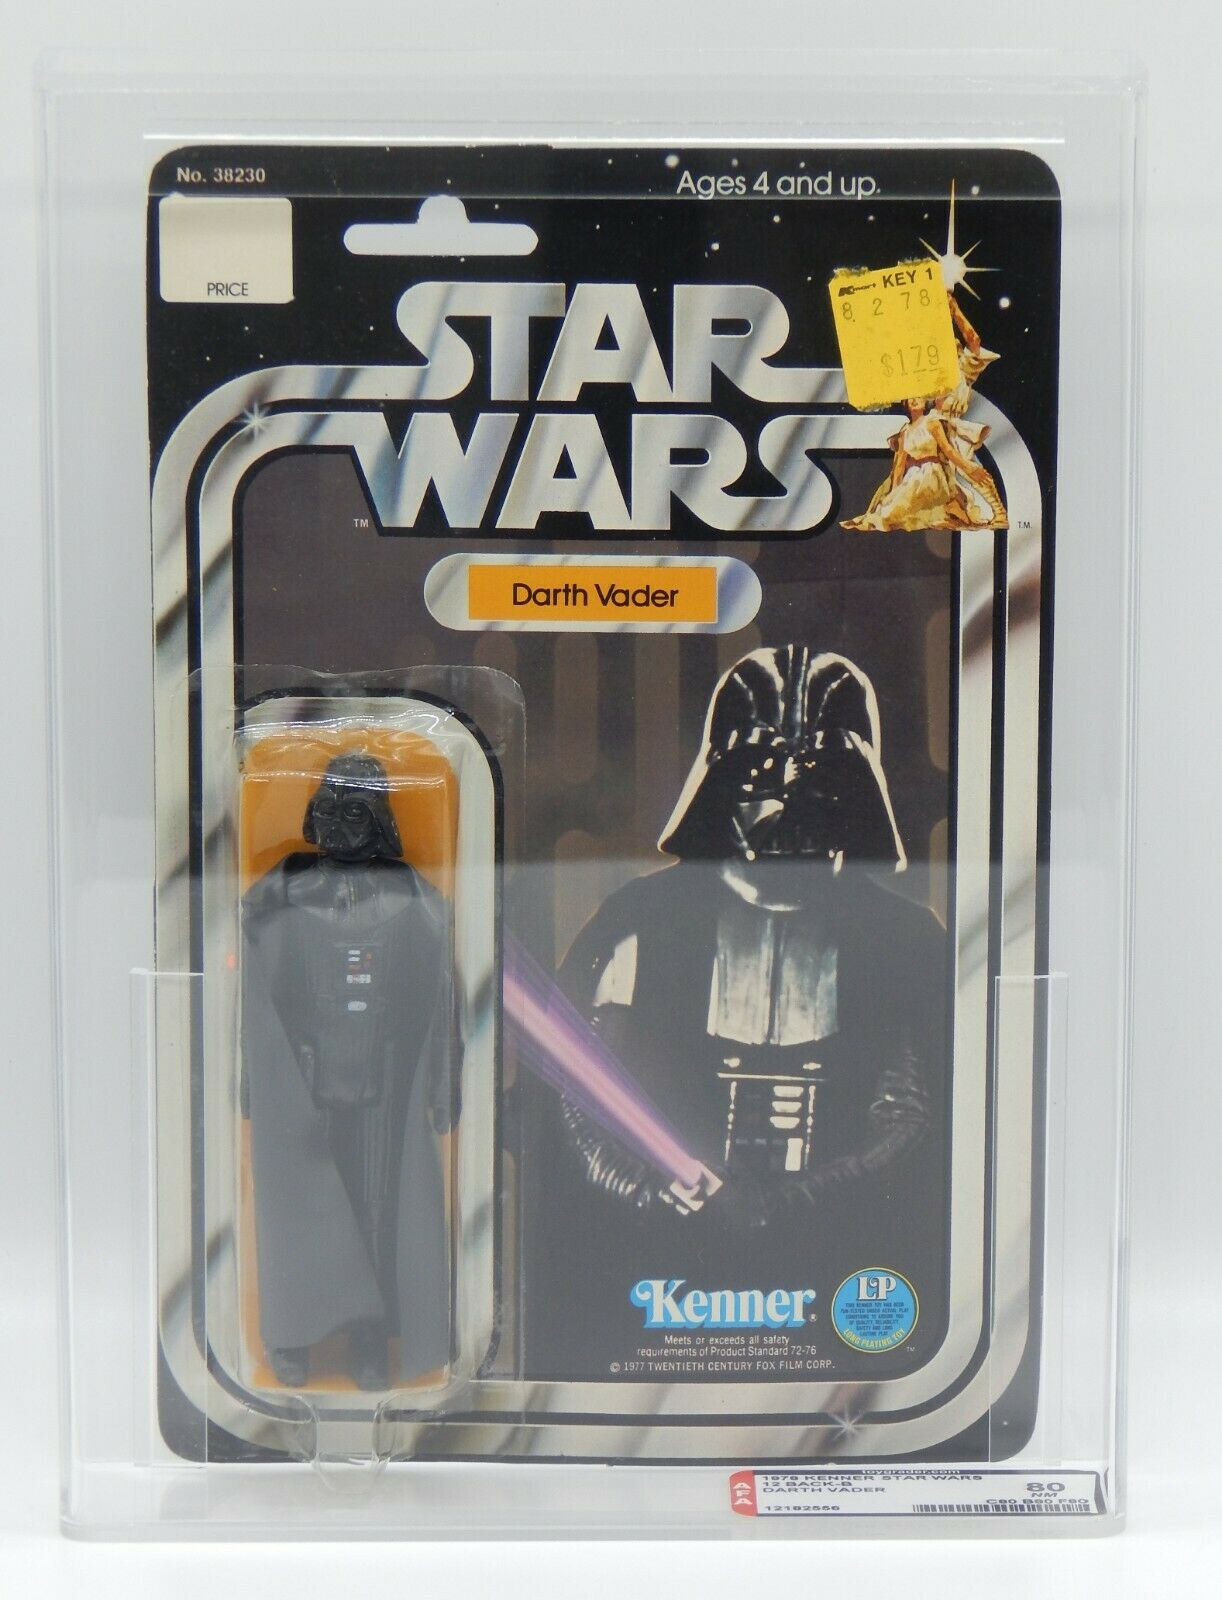 AFA 80 STAR WARS DARTH VADER Action Figure MOC 1977 KENNER 12 premiers dos B Rare